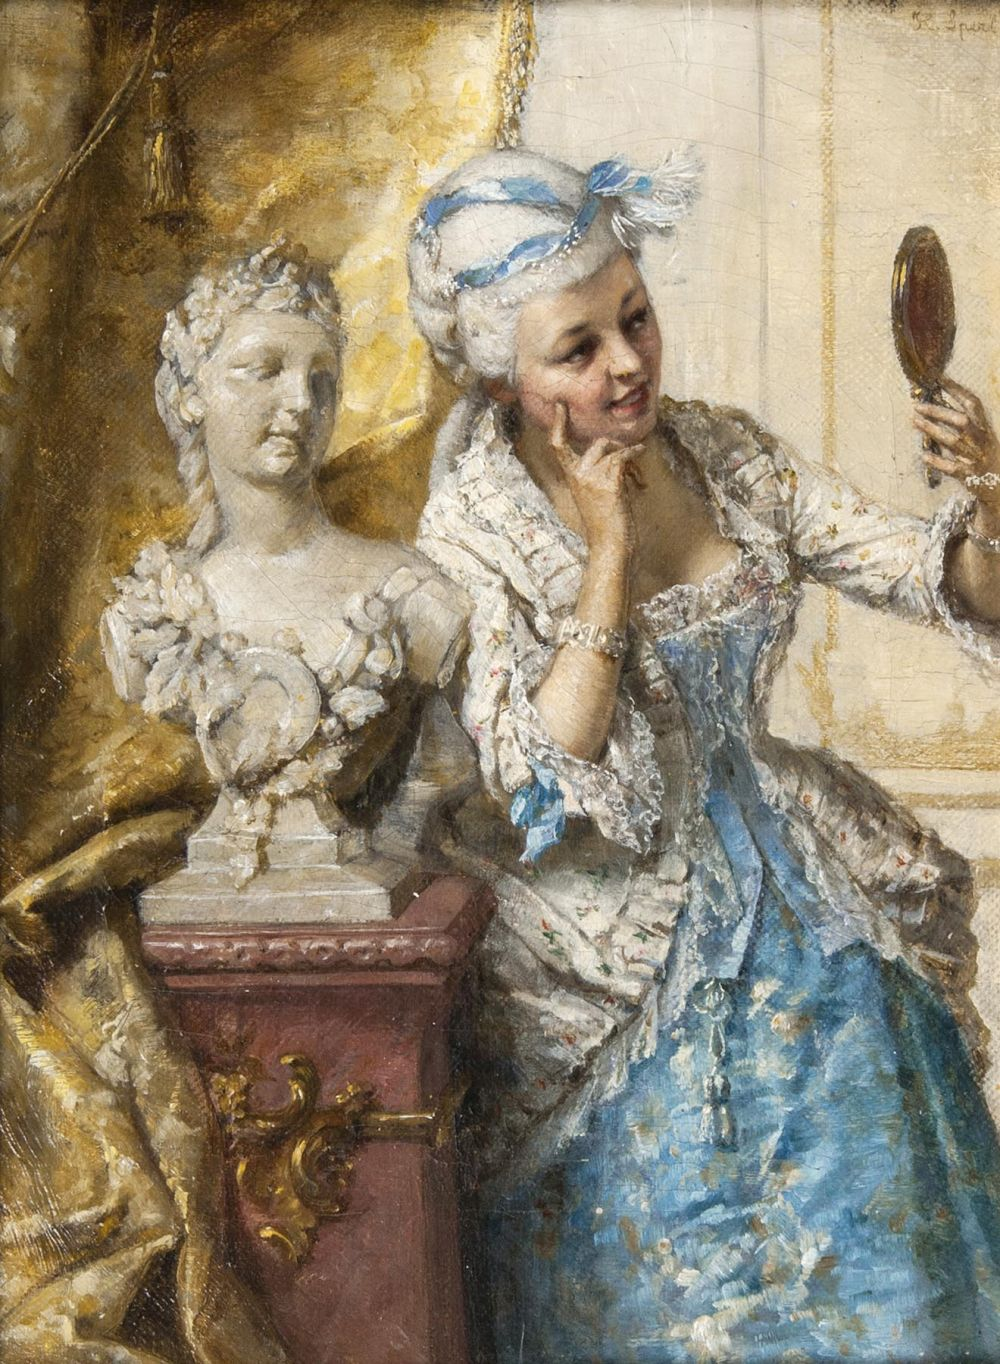 Lady with Mirror